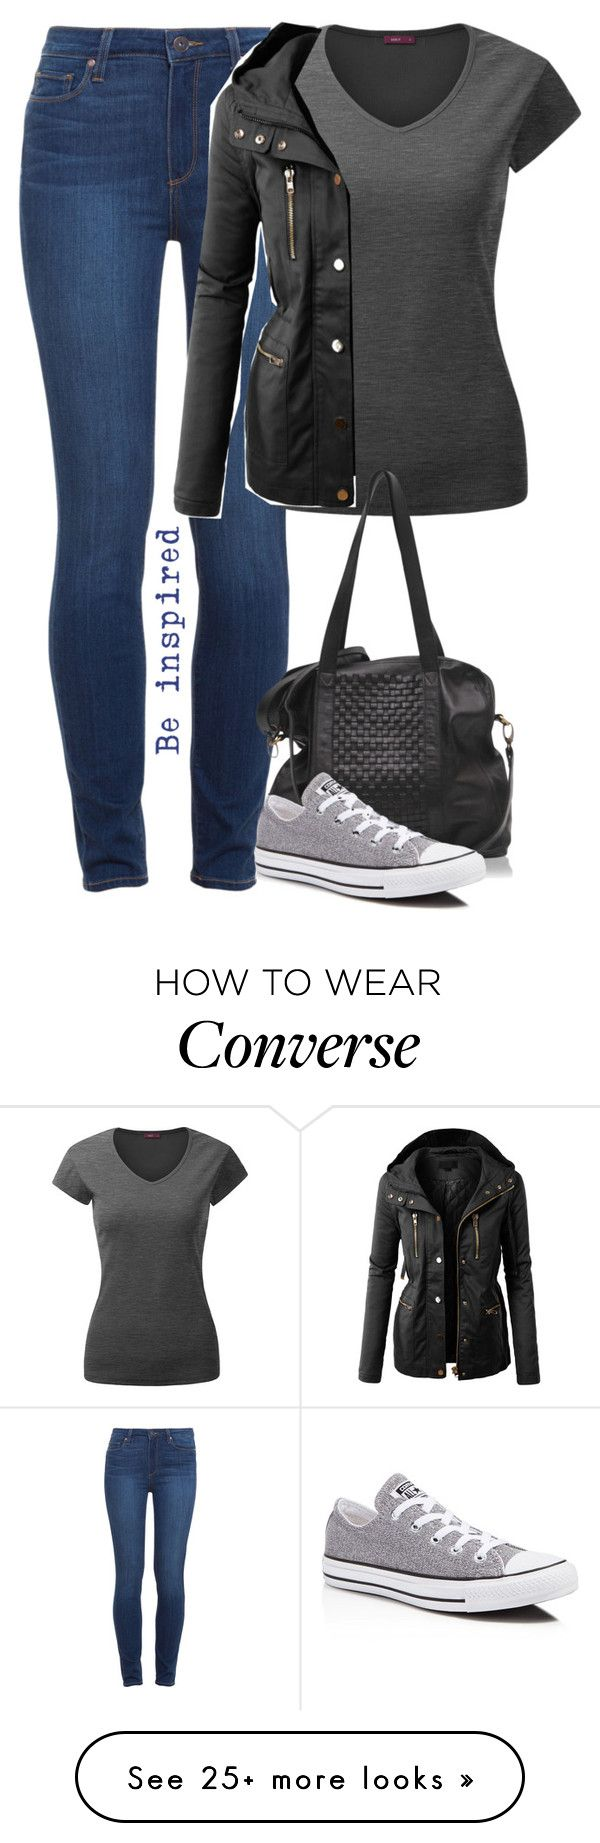 """Just a Casual Outfit"" by cloudybooks on Polyvore featuring mode, Paige Denim, Doublju, LE3NO en Converse"